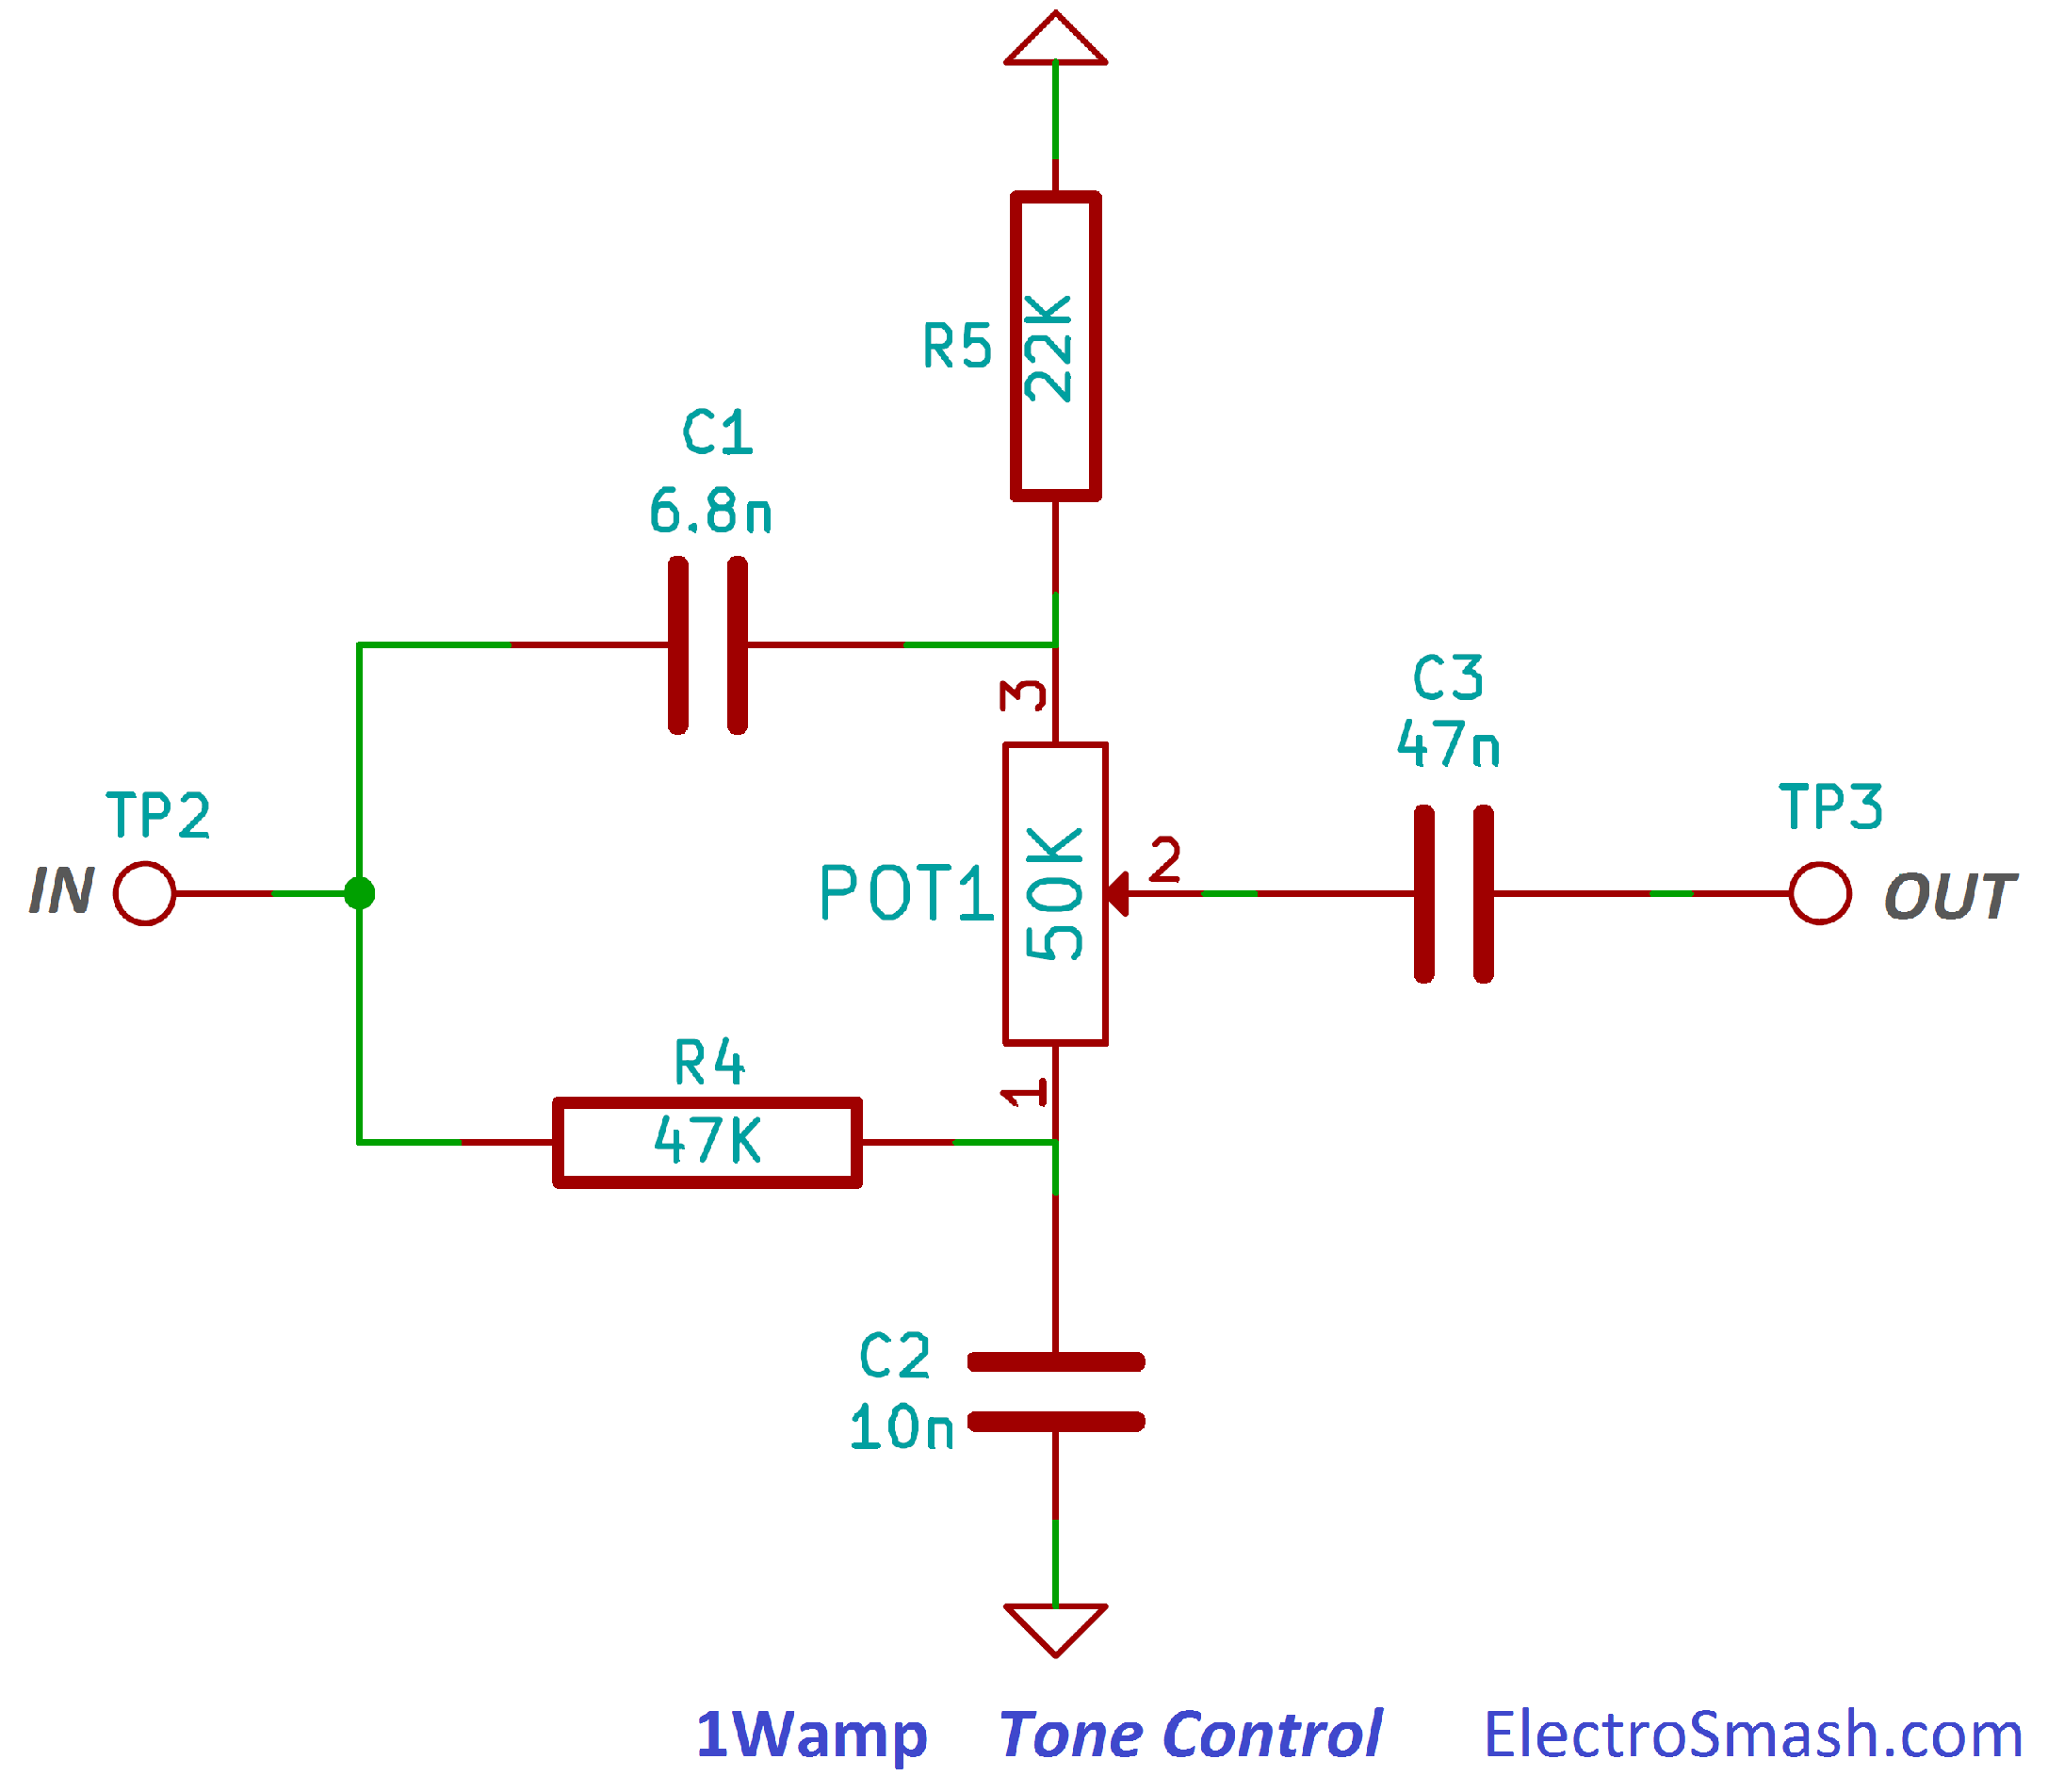 Tone Control Wiring Diagram Library Audio Noise Filter Circuits Eleccircuitcom 1wamp Circuit